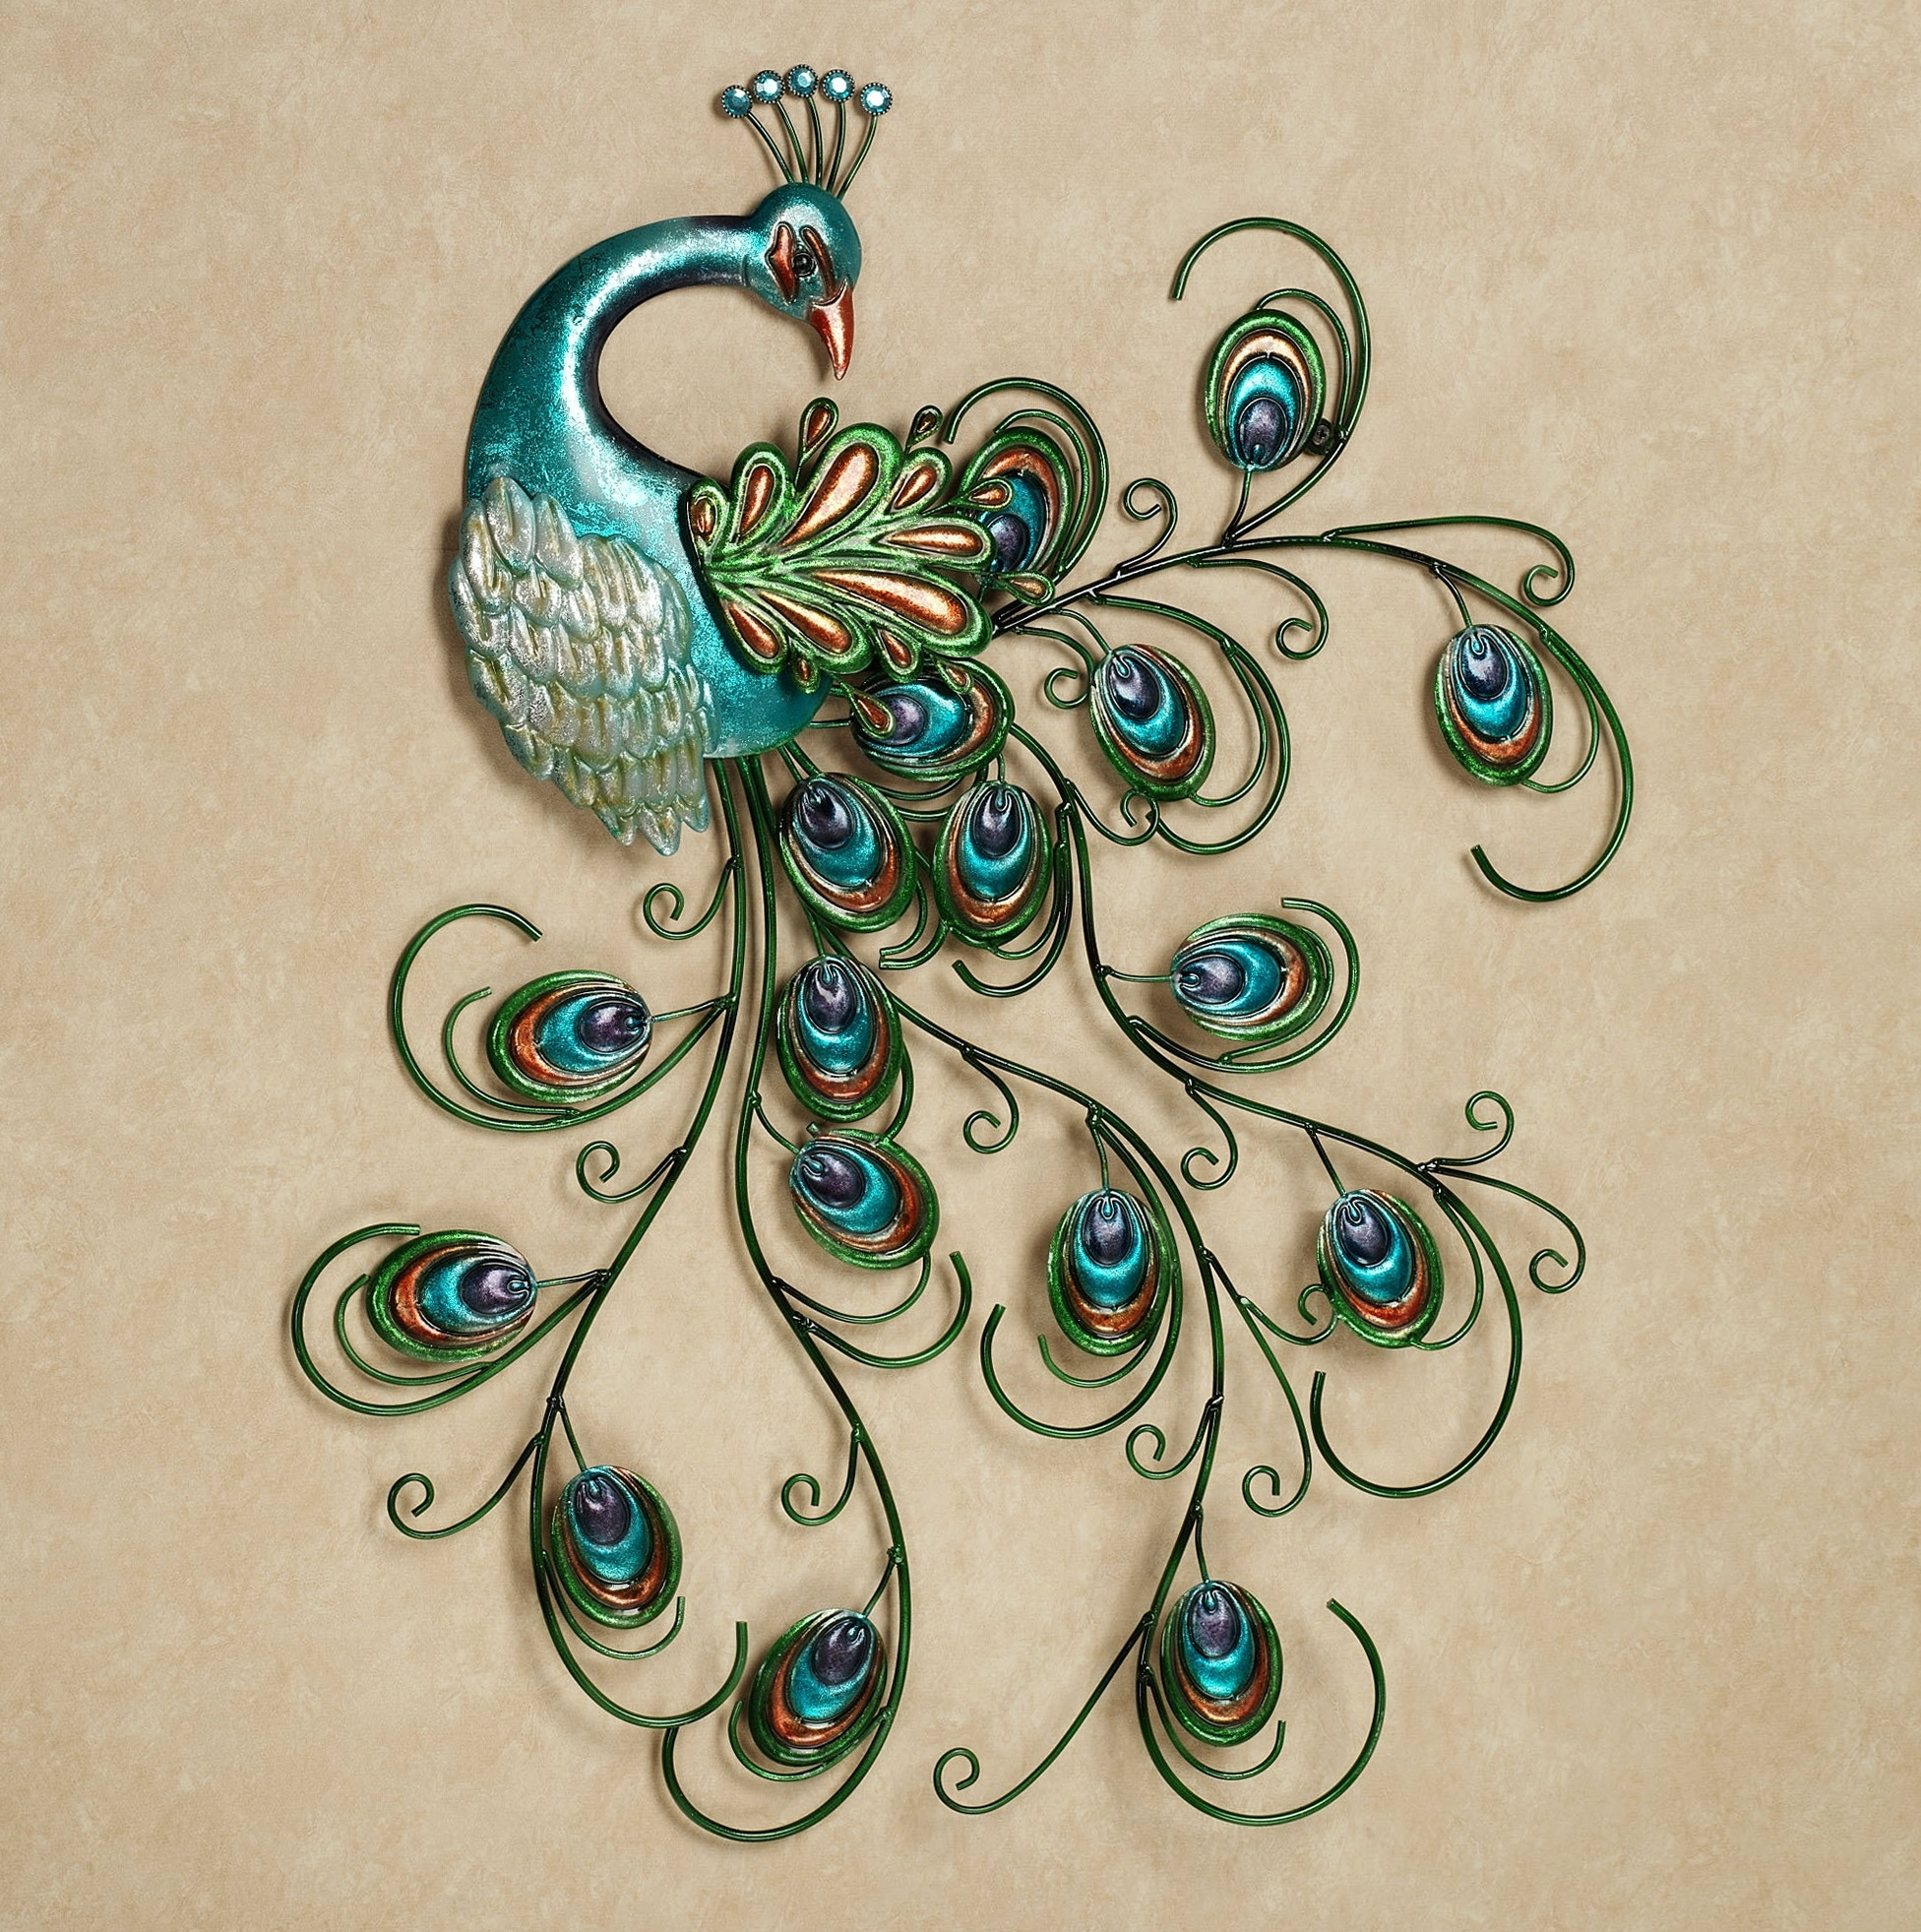 Home design ideas throughout 2017 metal peacock wall art view 6 of 15